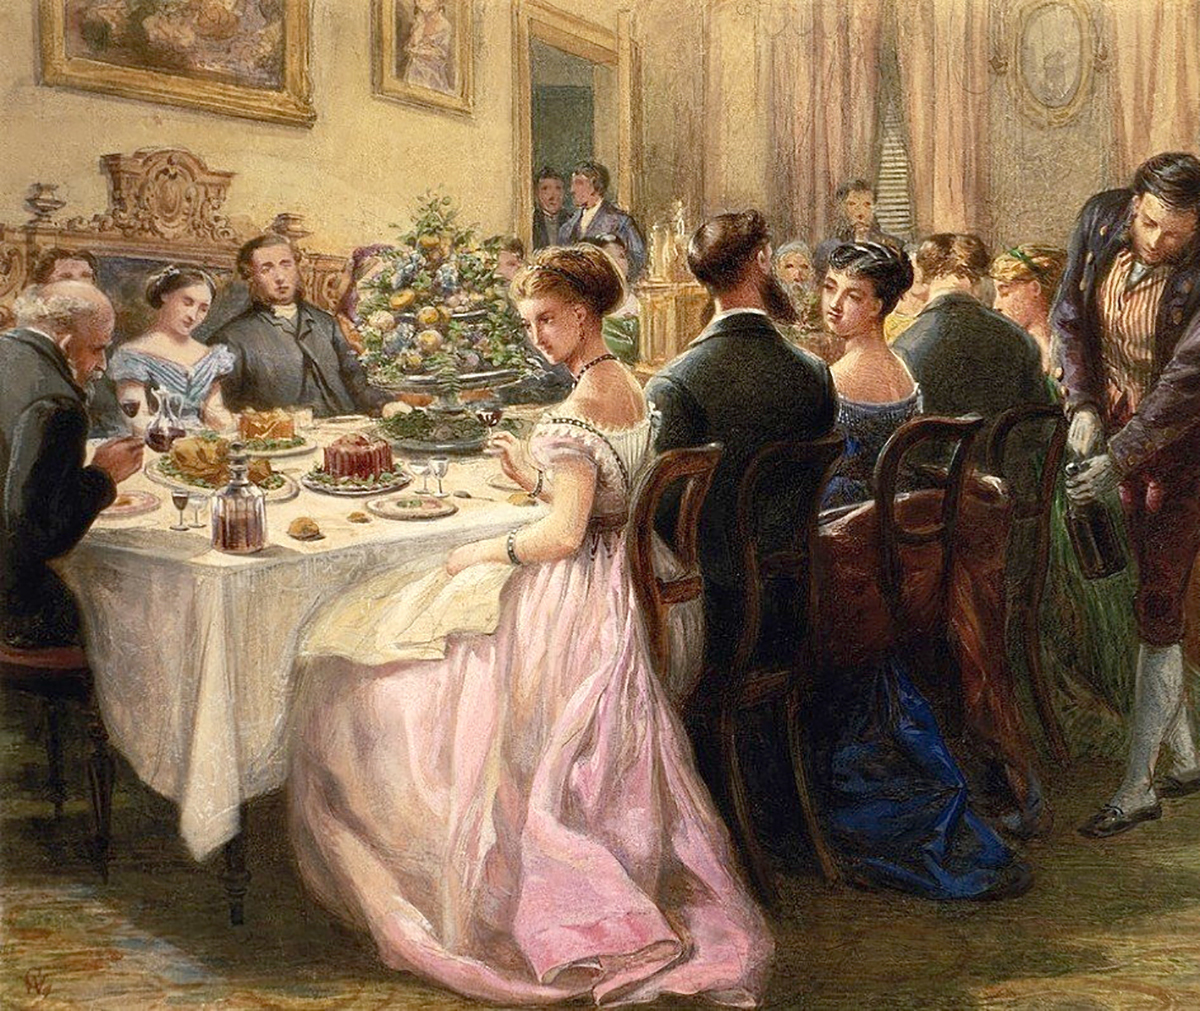 The Dinner Party. By Sir Henry Cole